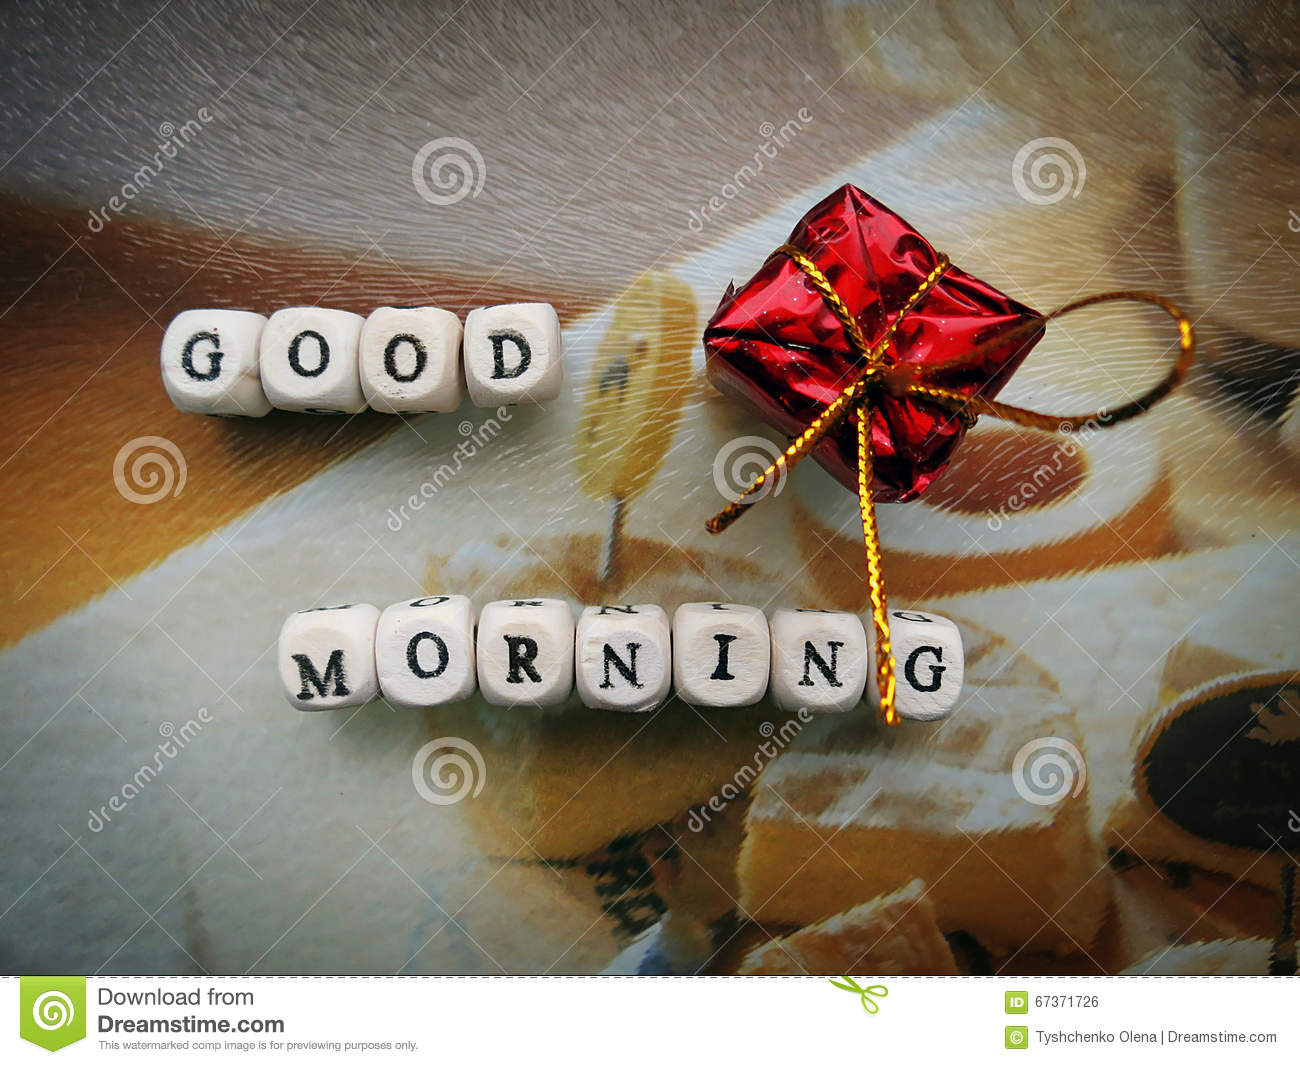 Good morning small wooden cubes and a gift stock photo image of good morning small wooden cubes and a gift stock photo image of board keyword 67371726 negle